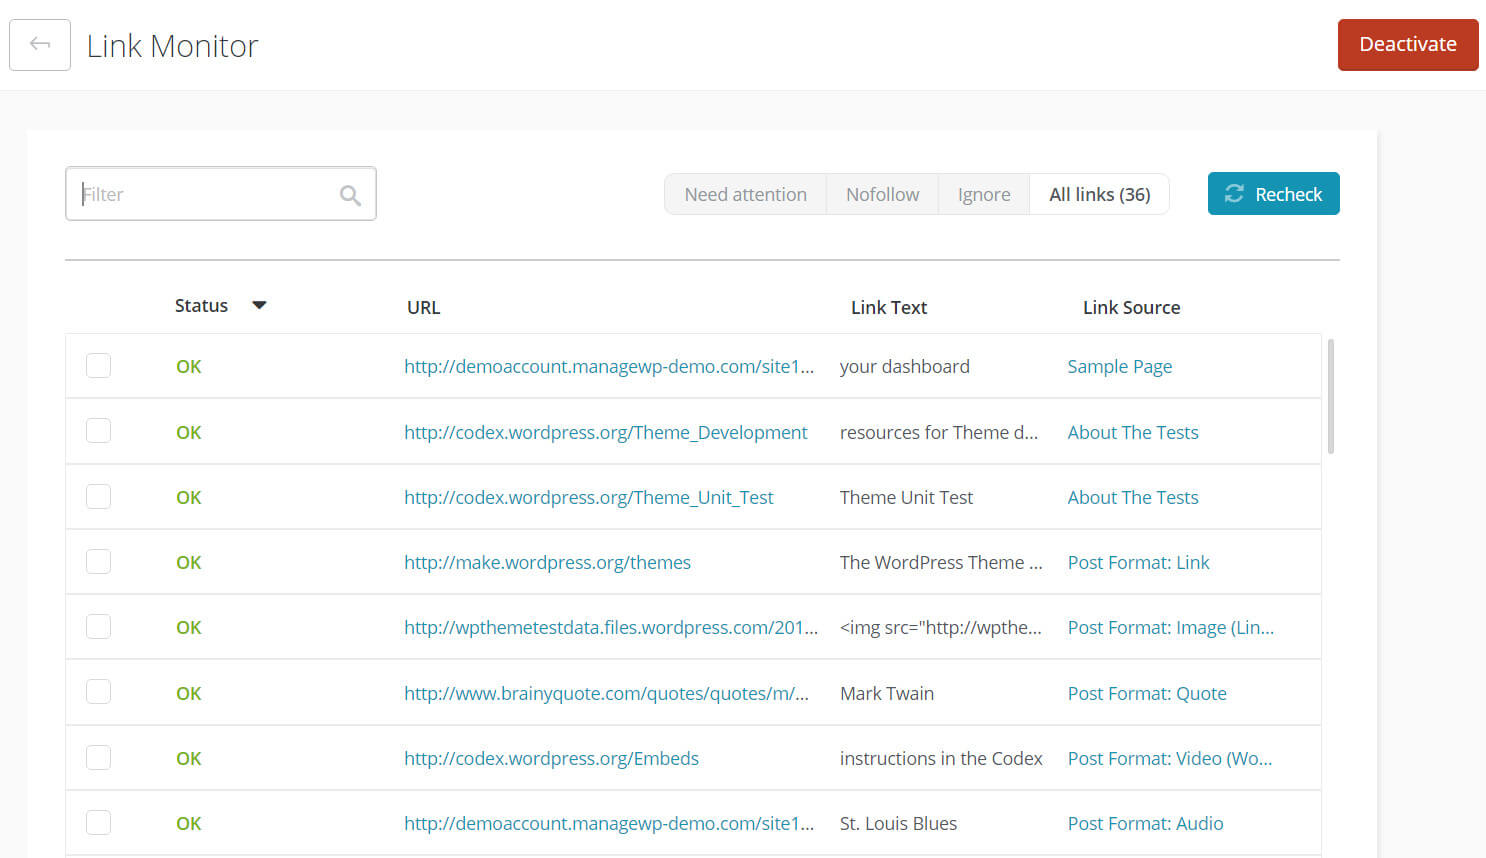 Link Monitor in the ManageWP dashboard.